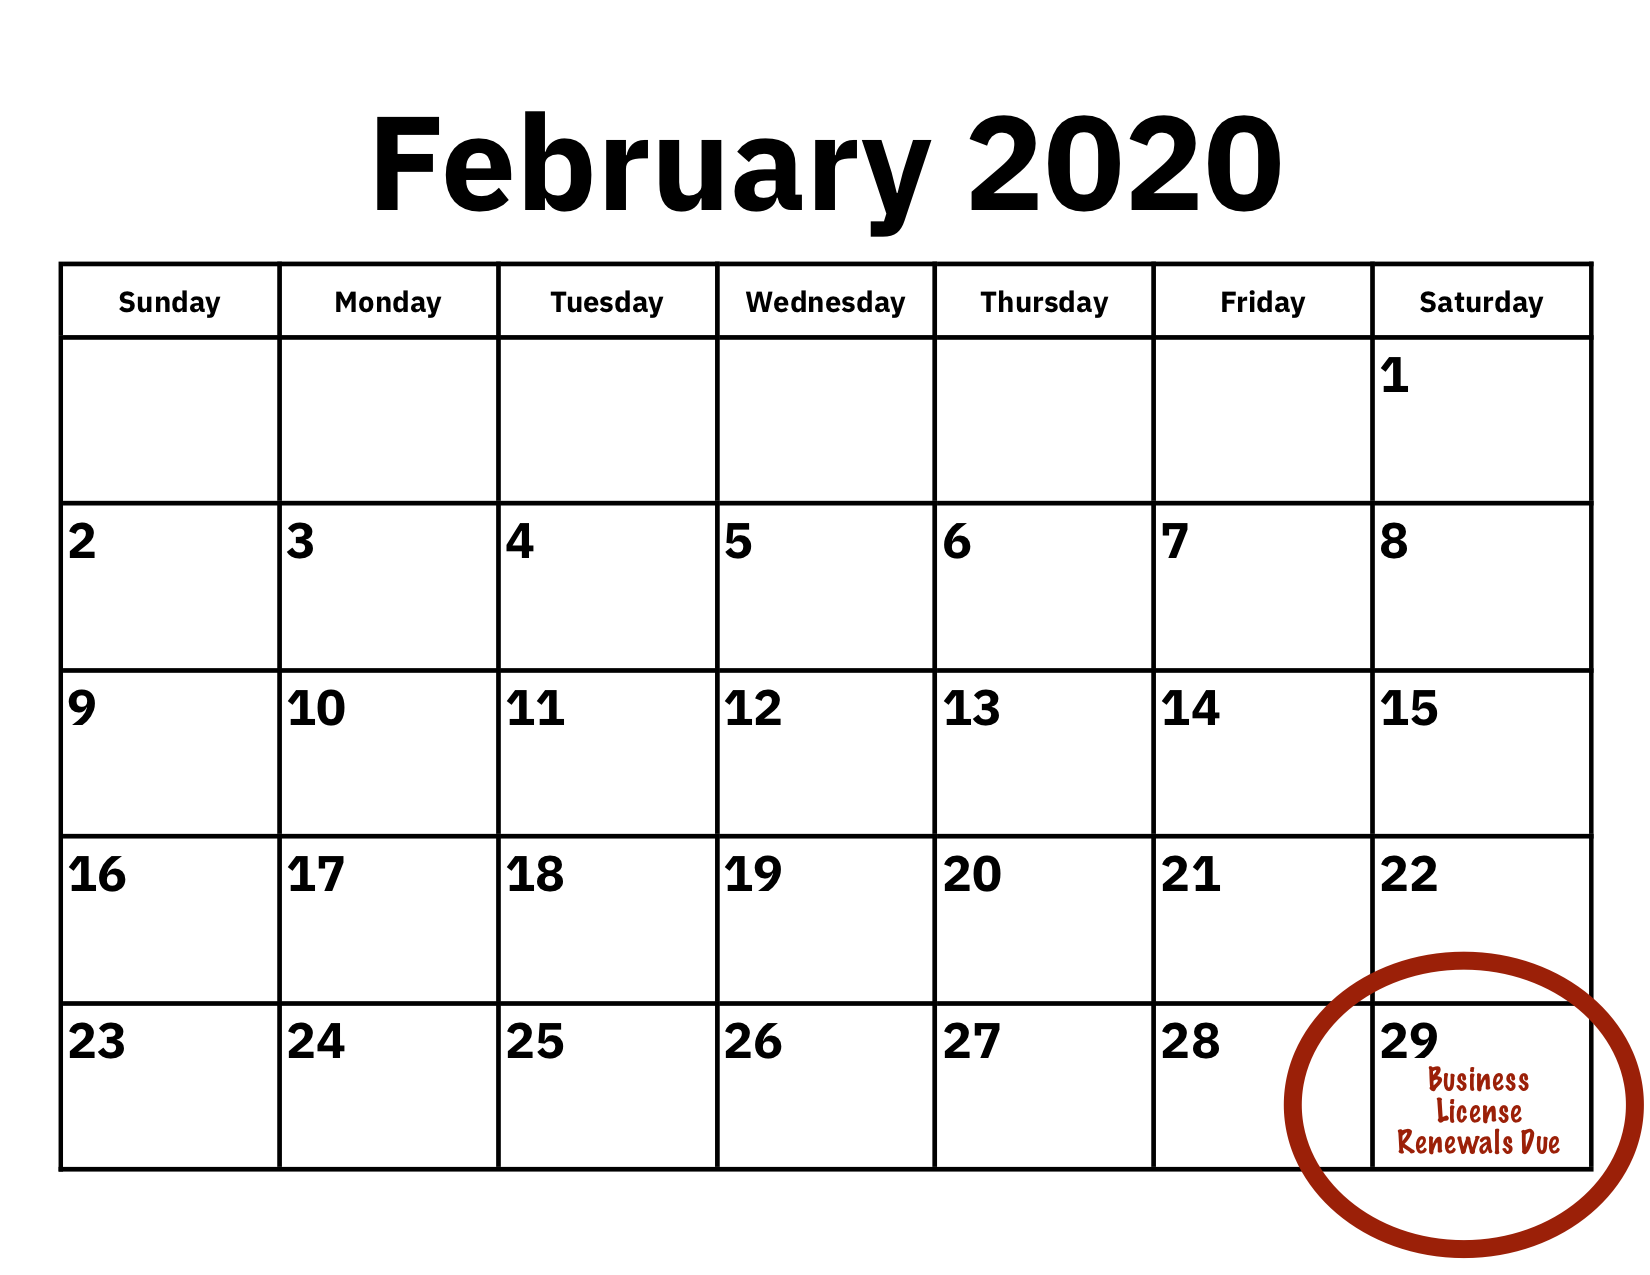 Business License Renewals Due 2/29/2020